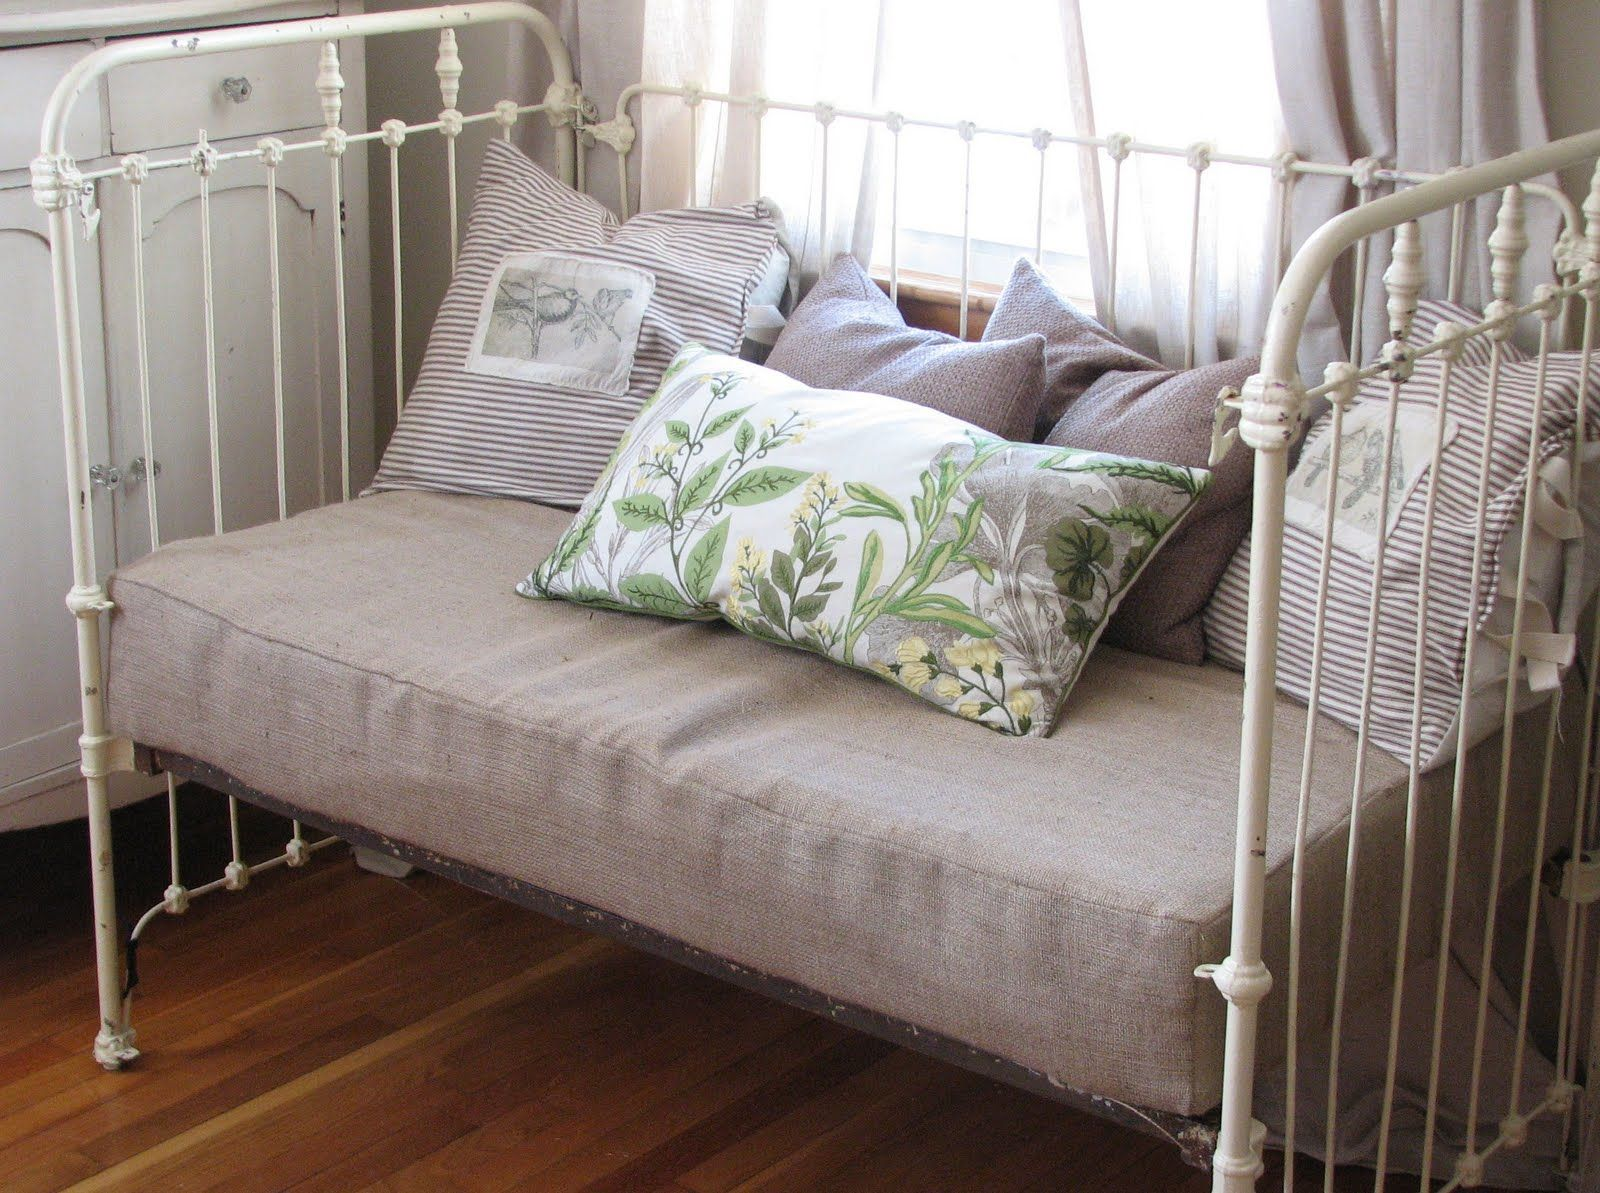 Antique Baby Cribs Iron Crib To Daybed Conversion For Baby Pinterest Iron Crib